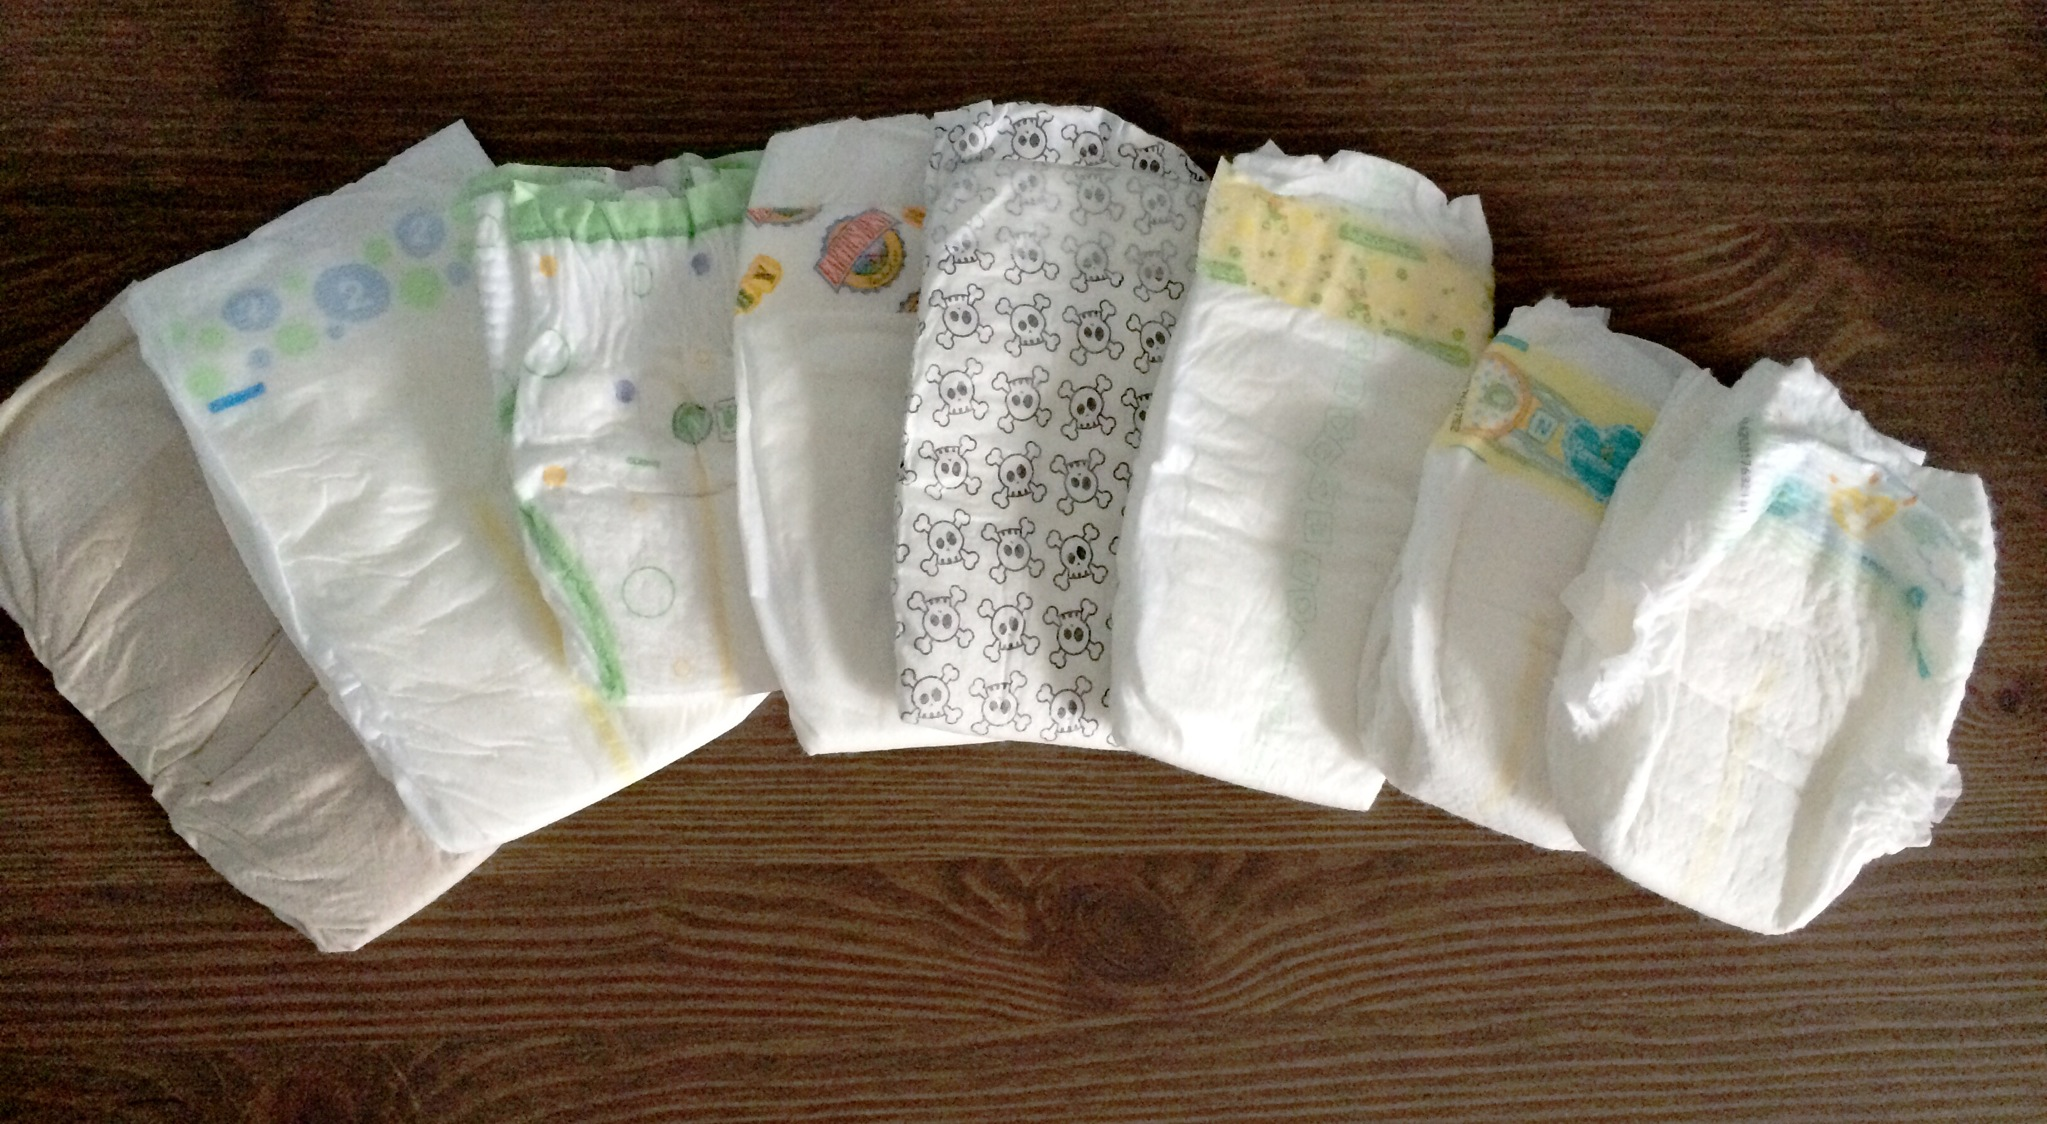 Lummy Pampers Se Diapers Did Work Well Brody Fitwas He Had No Blow Soft But A Little Rough On His Diaper Review Norrn Euphoria baby Huggies Vs Pampers